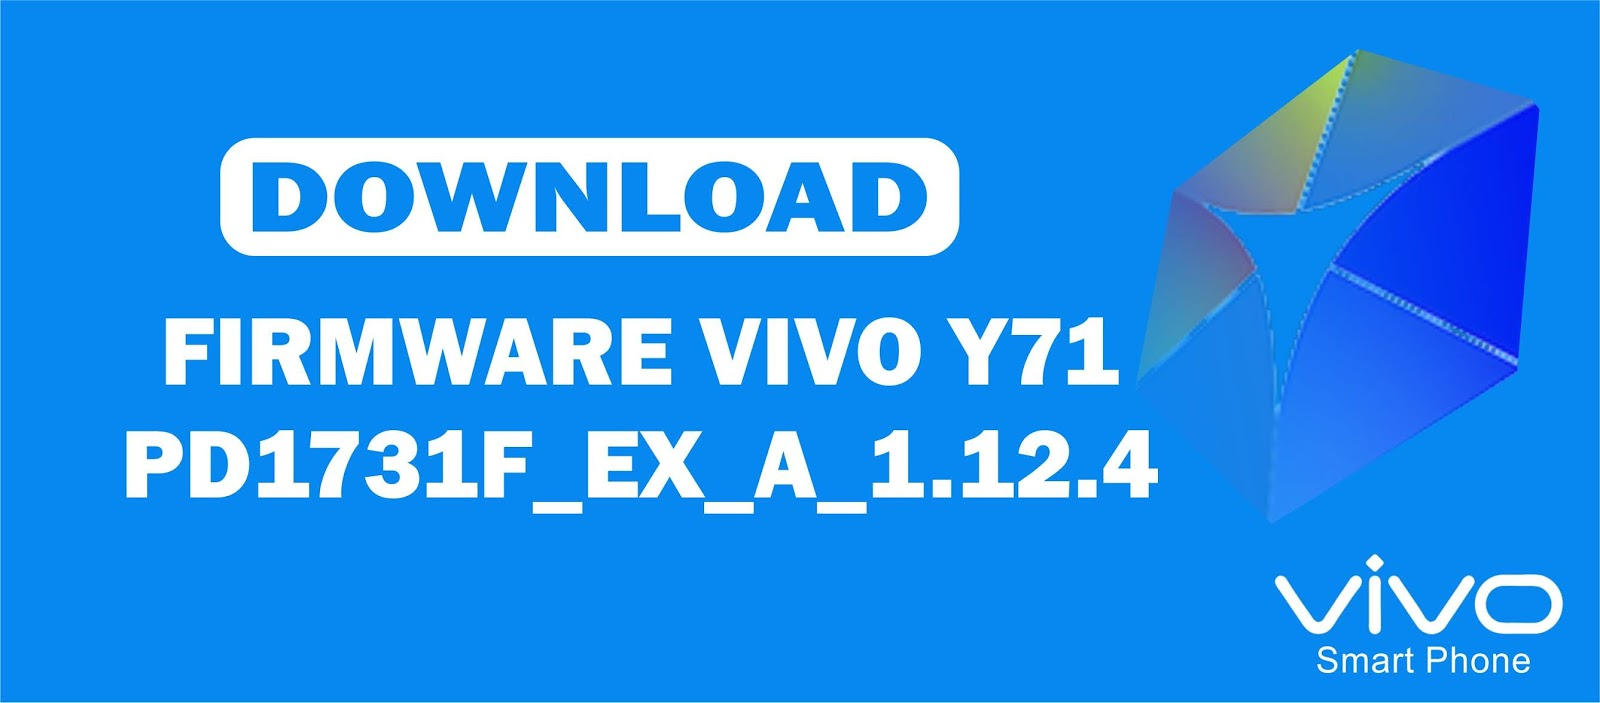 Download Firmware Vivo Y71 PD1731F_EX_A_1 12 4 - Repairs Ponsel